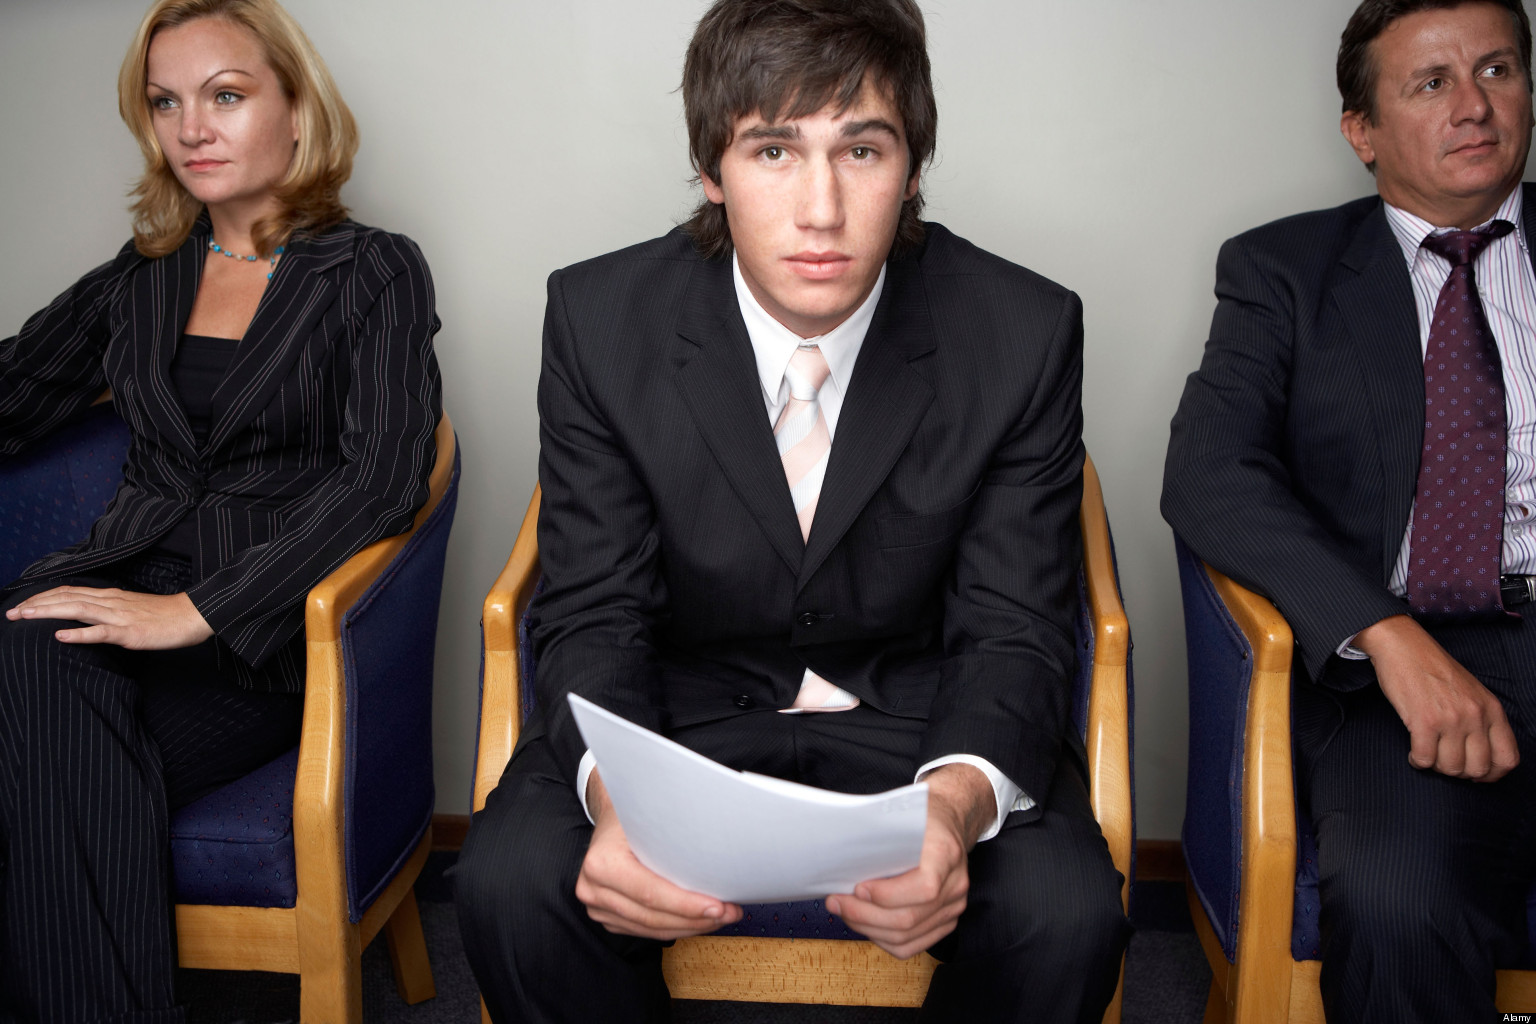 Young Man Nervous about Job Interview